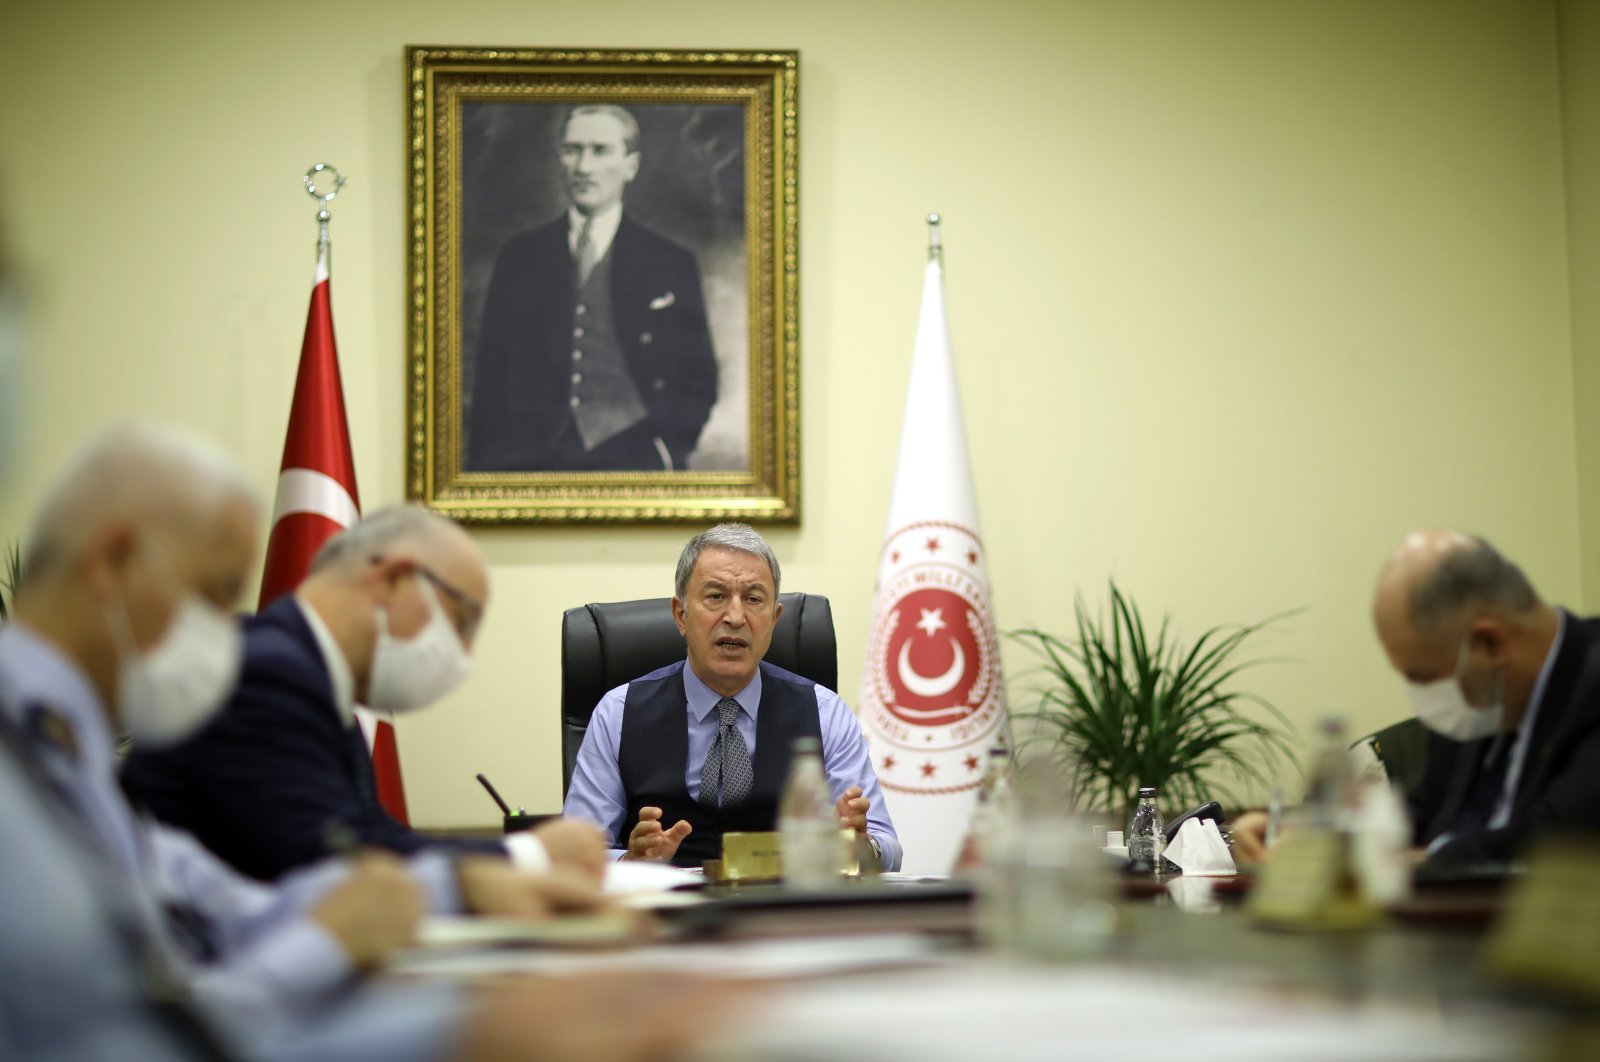 Defense Minister Hulusi Akar speaks at a meeting with ministry officials and commanders-in-chief of the Turkish military in the capital Ankara on Nov. 17, 2020. (AA Photo)